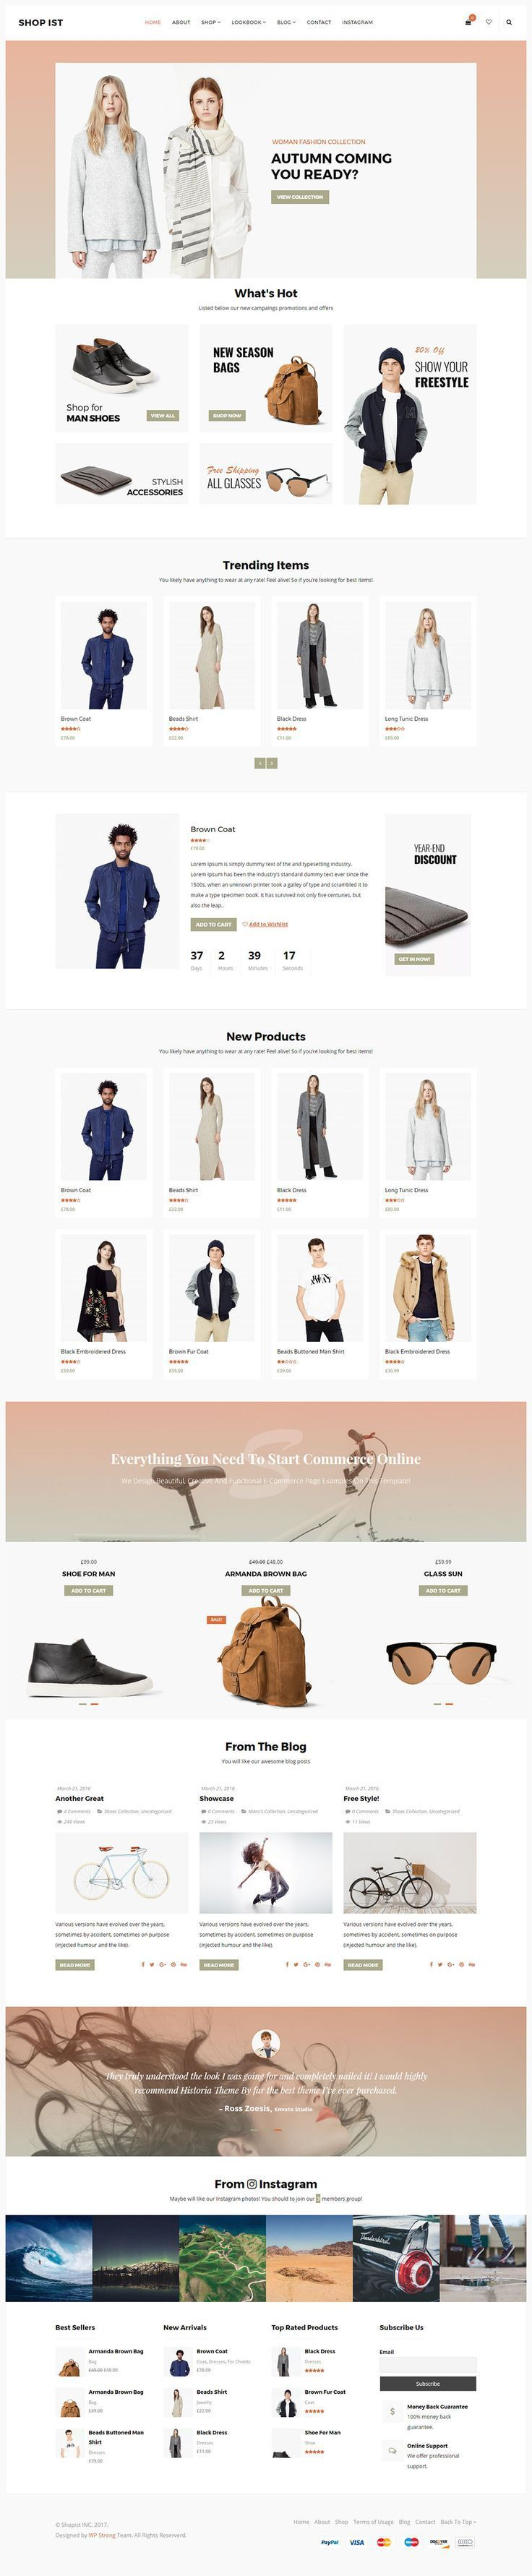 Shopist is a creative ecommerce responsive Wordpress theme coded with Wordpress Standard and Redux framework. The design is very elegant and modern, and also very easy to customize with 1170px grid.: https://themeforest.net/item/shopist-responsive-stylish-ecommerce-wordpress-theme/19477822?ref=rabosch